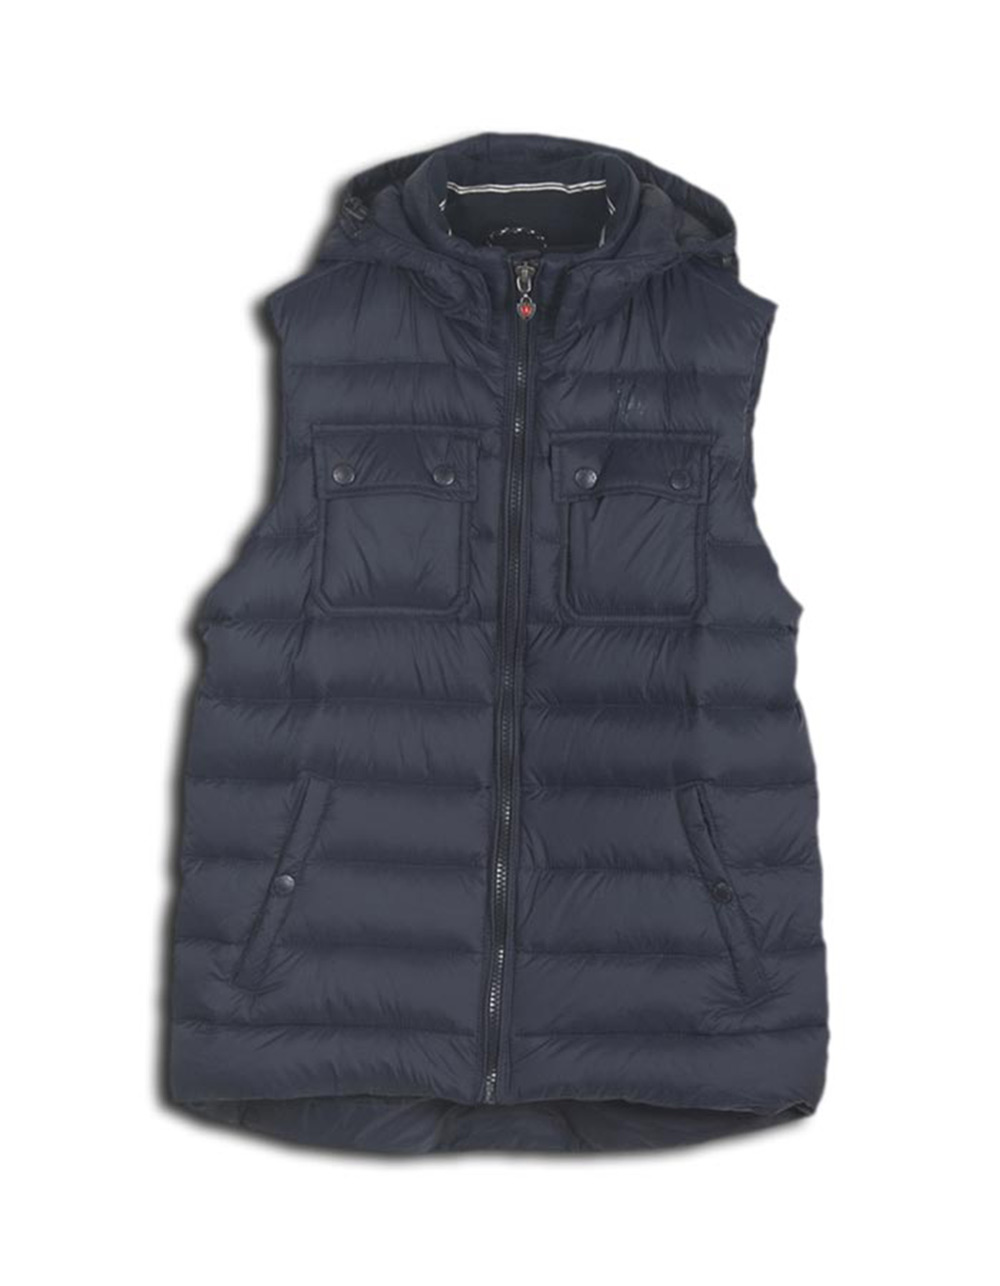 Navy quilted vest - Backside